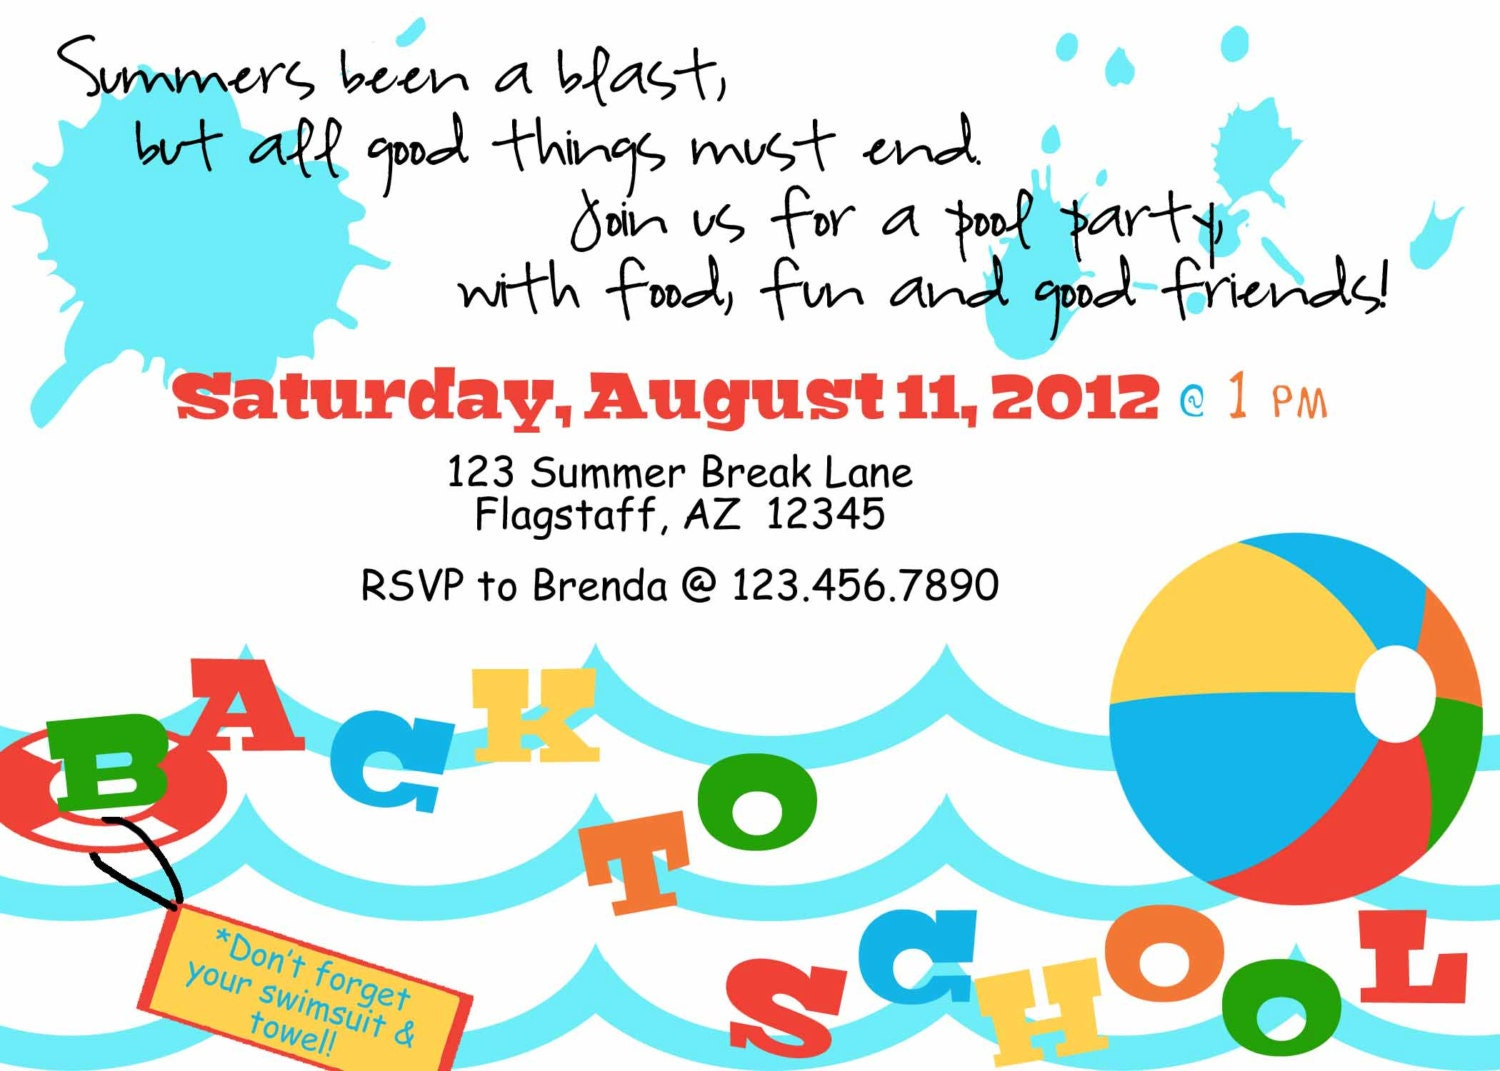 Get Together Invitation Wording – End of the Year Party Invitation Wording